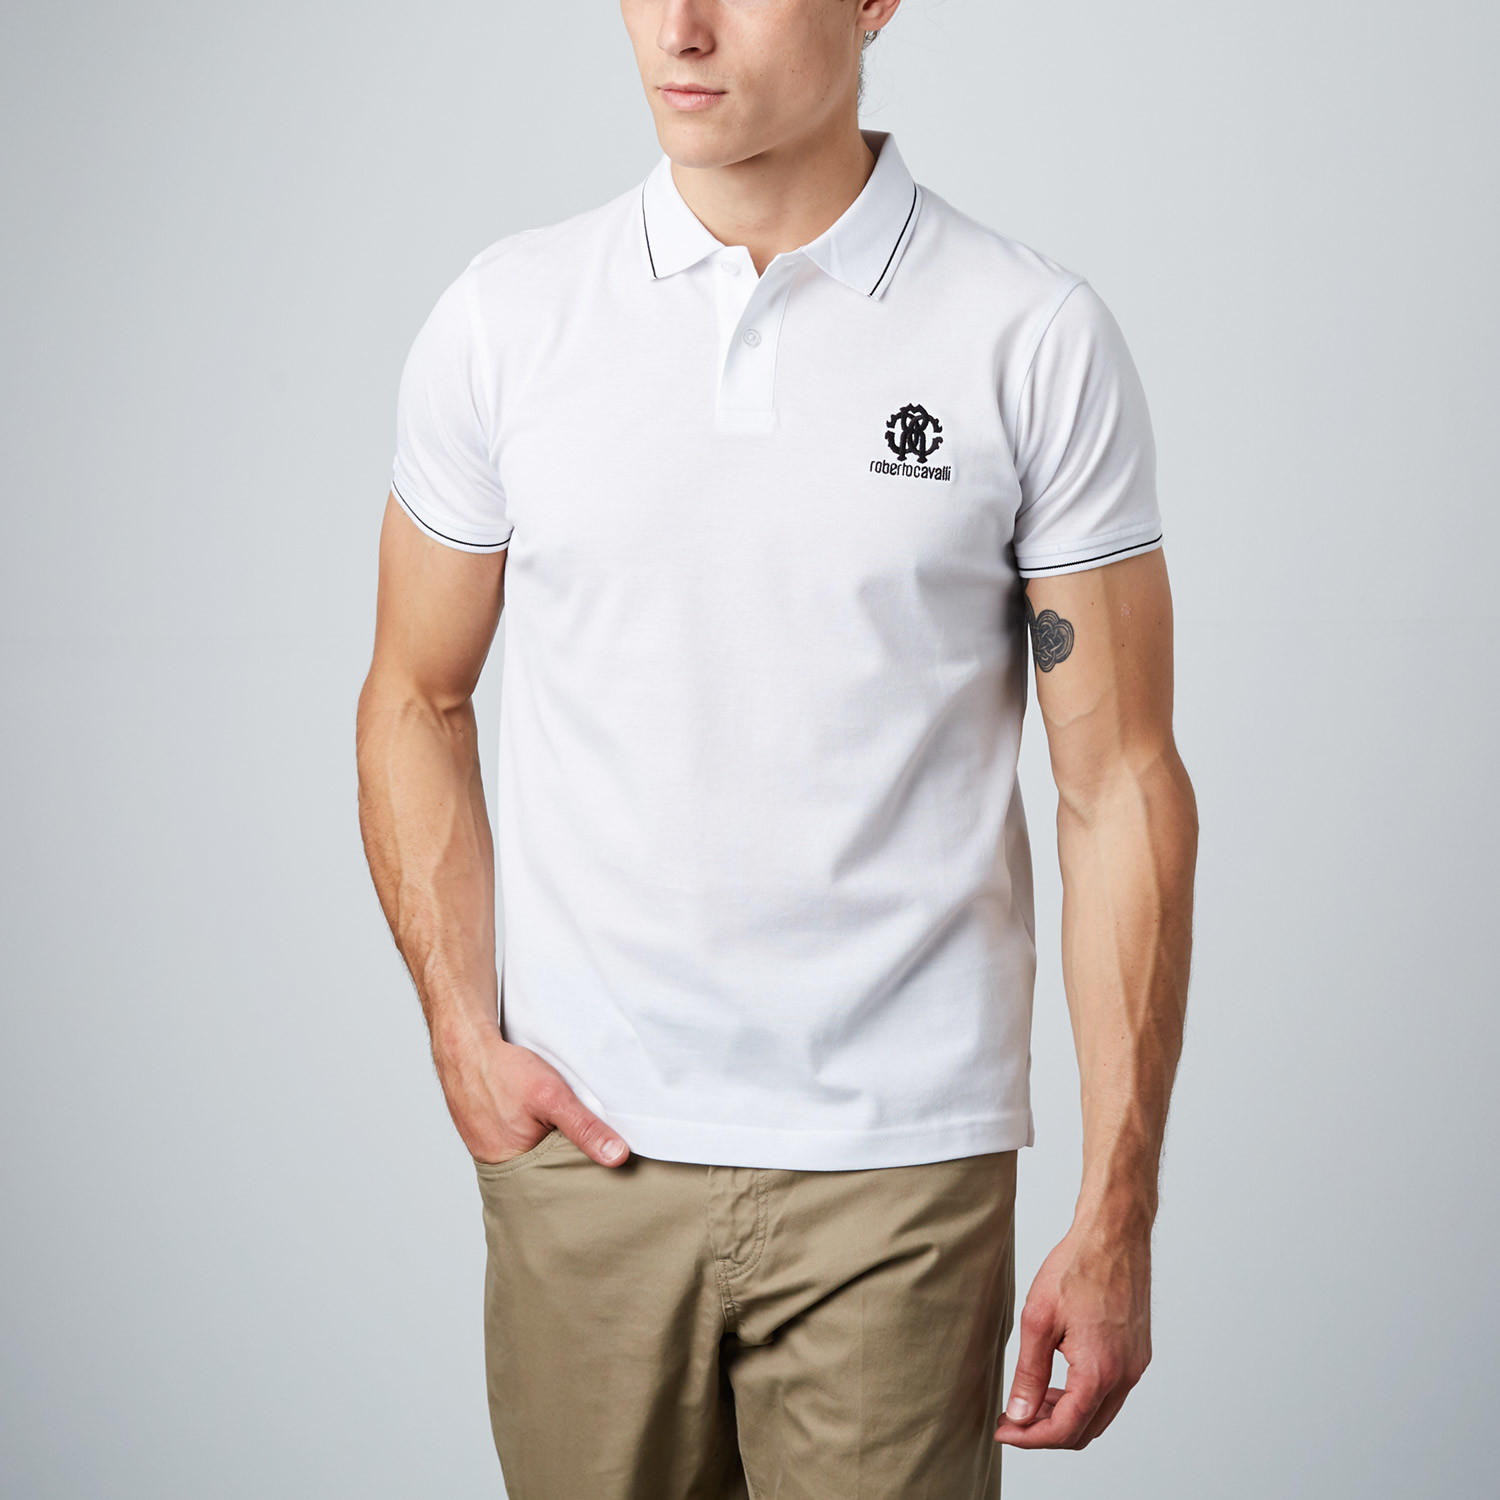 2041e1defc4c Contrast Stitched Embroidered Logo Polo // White (L) - Fashion ...